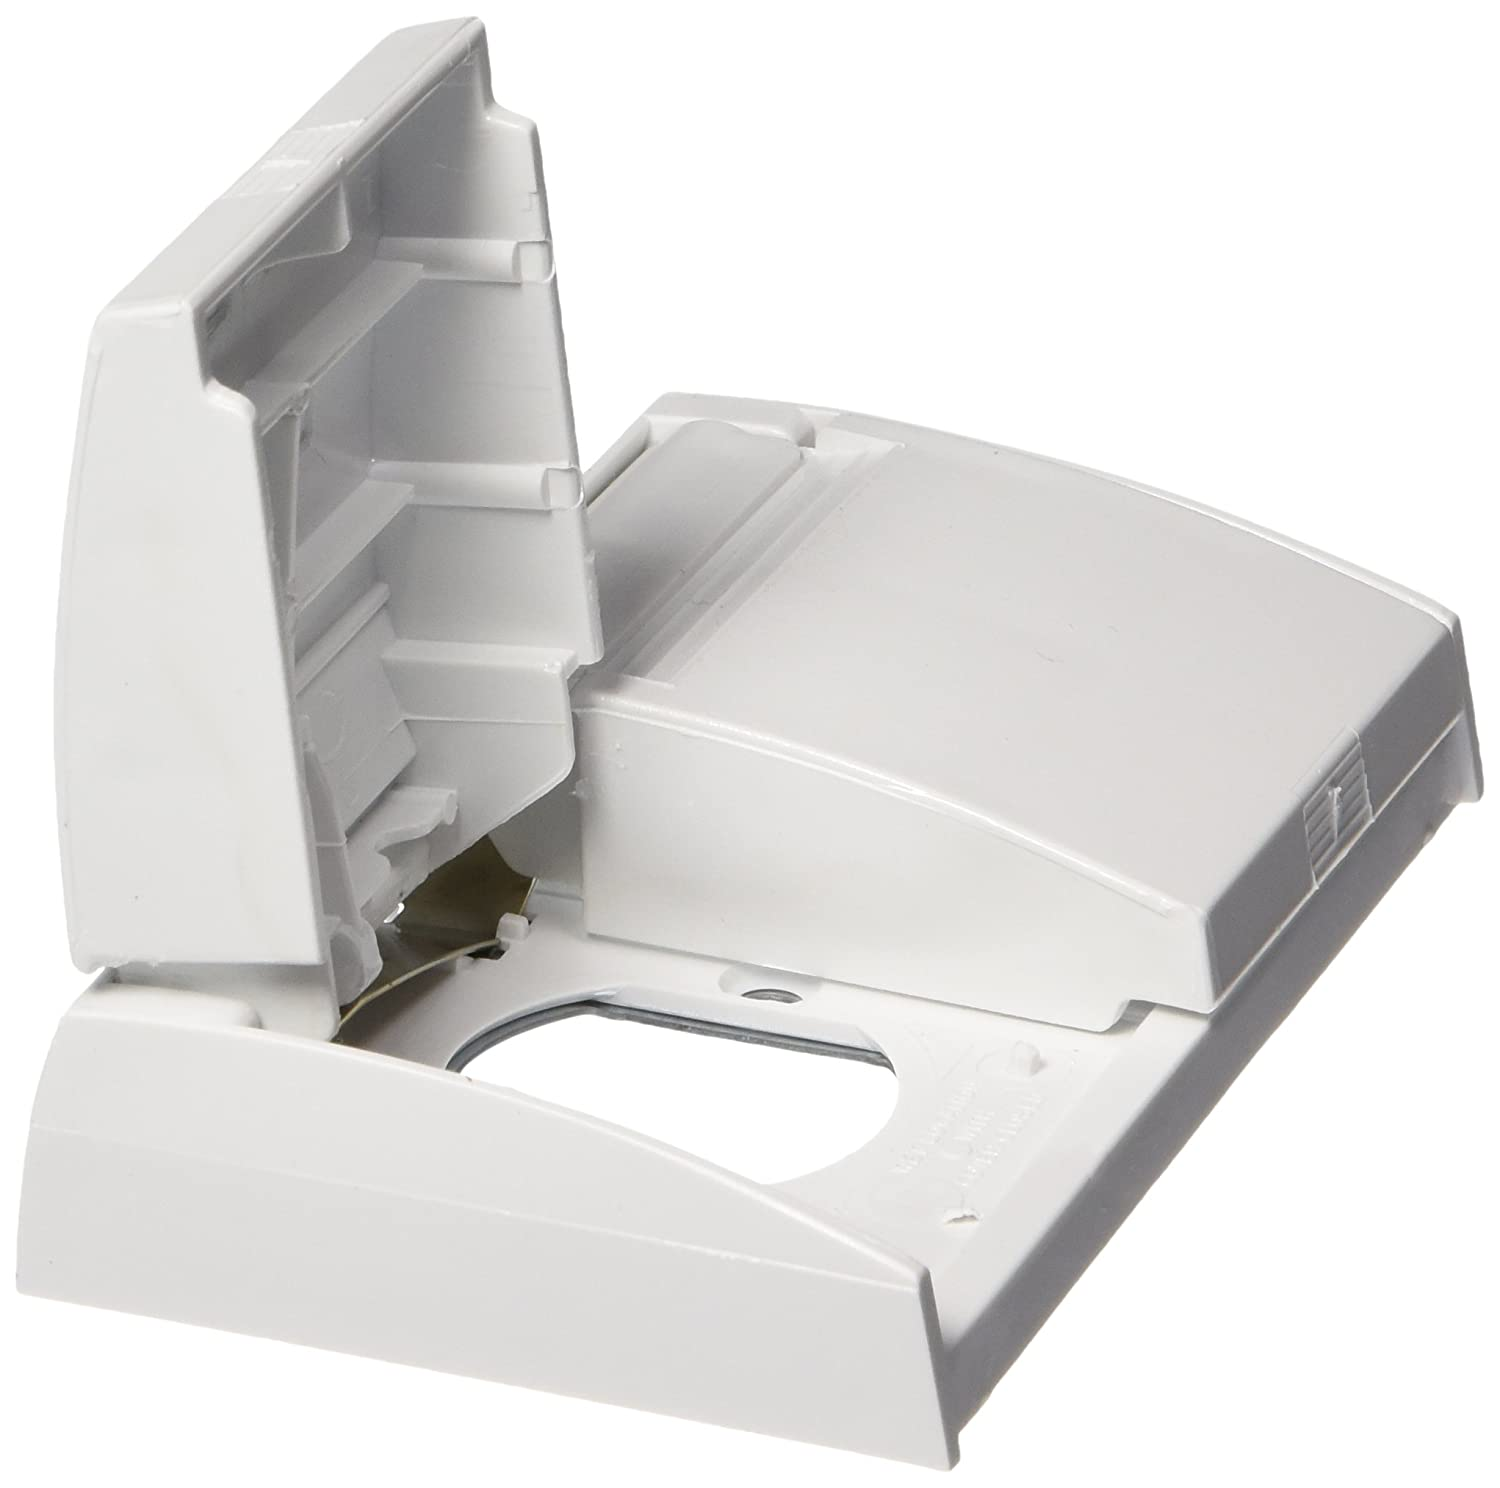 RV Designer Collection 97749C-7 E365 Snap Cover-Plate Only White